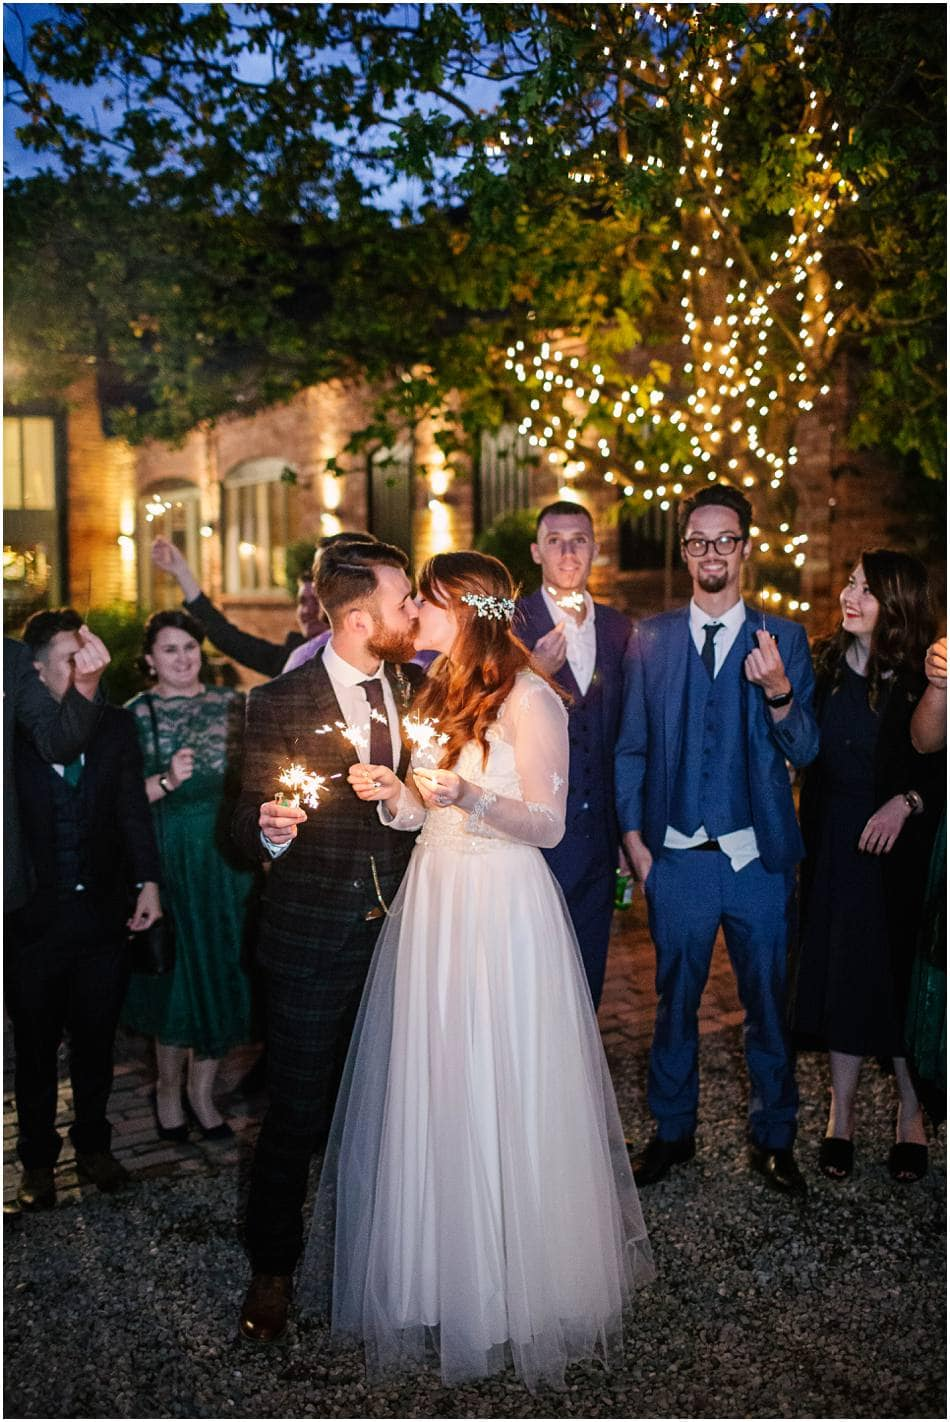 Bride and Groom holding sparklers and kissing at Curradine Barns